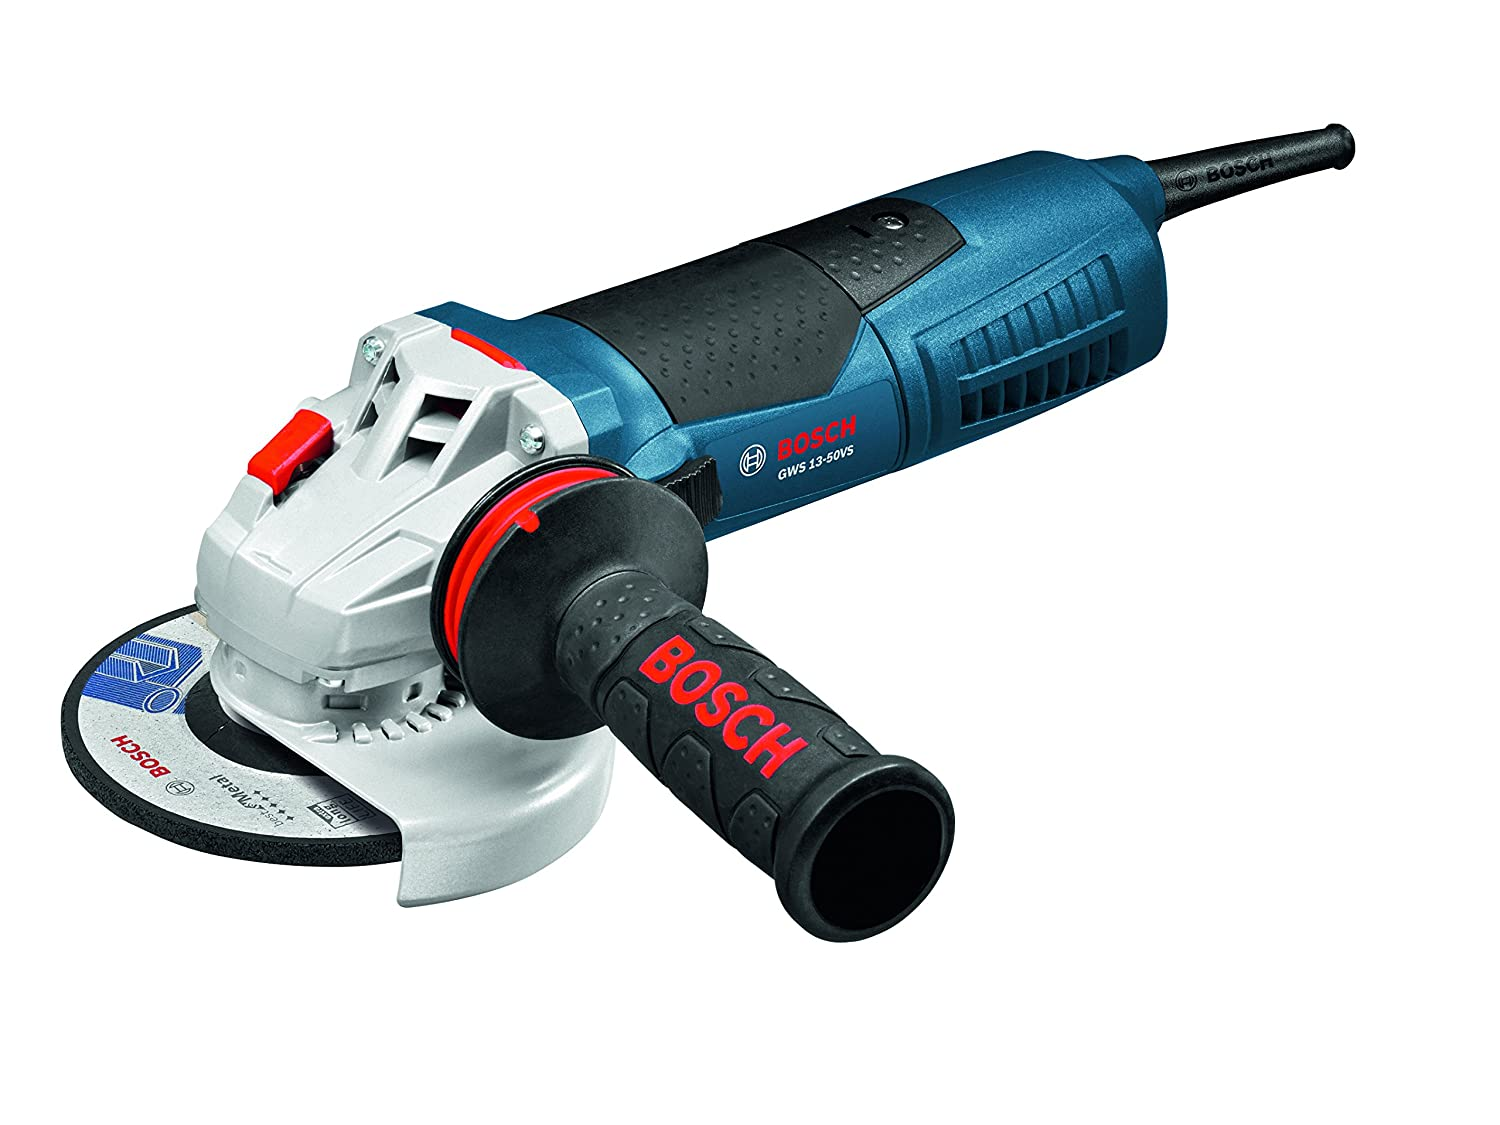 Bosch GWS13-50VS High-performance Angle Grinder